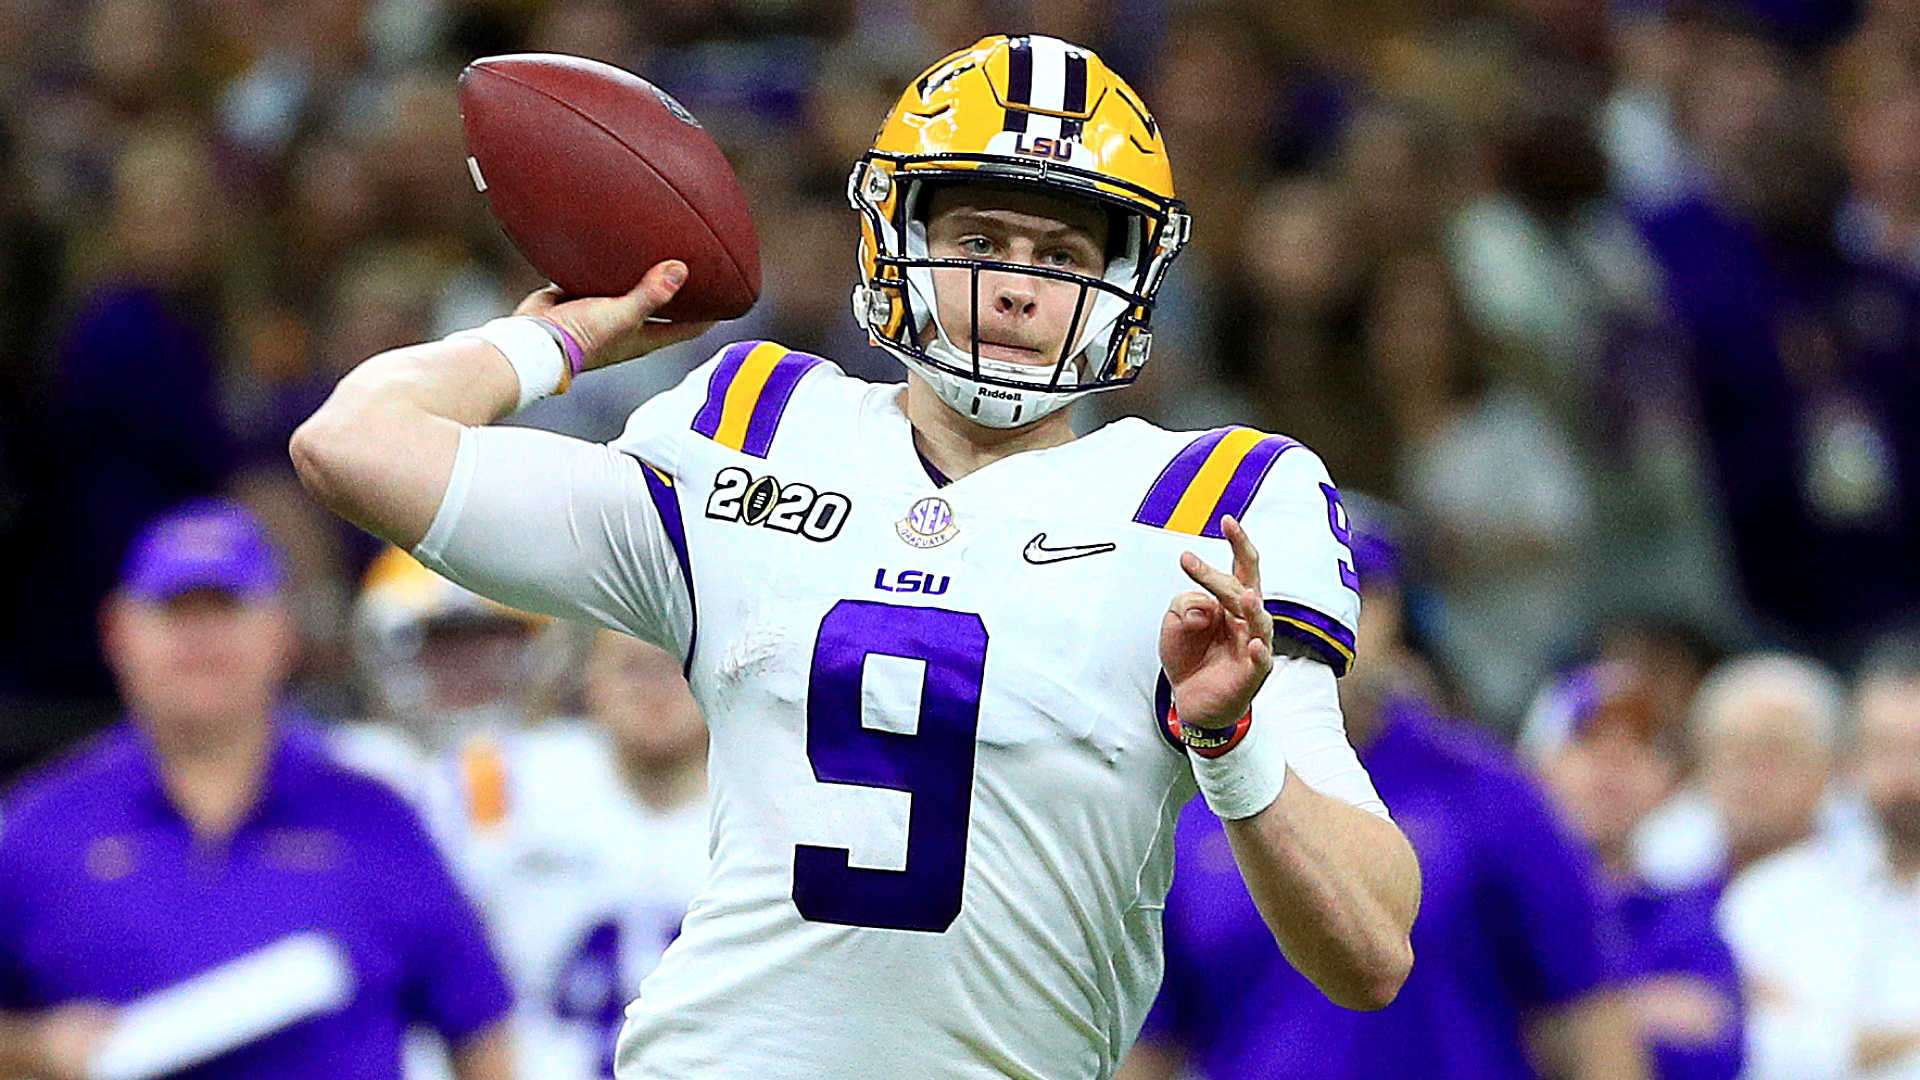 How The Bengals Can Avoid Ruining Lsu S Joe Burrow After Landing Him In The 2020 Nfl Draft Sporting News Joe burrow's dad is thrilled his son finally signed his contract with the bengals. 2020 nfl draft